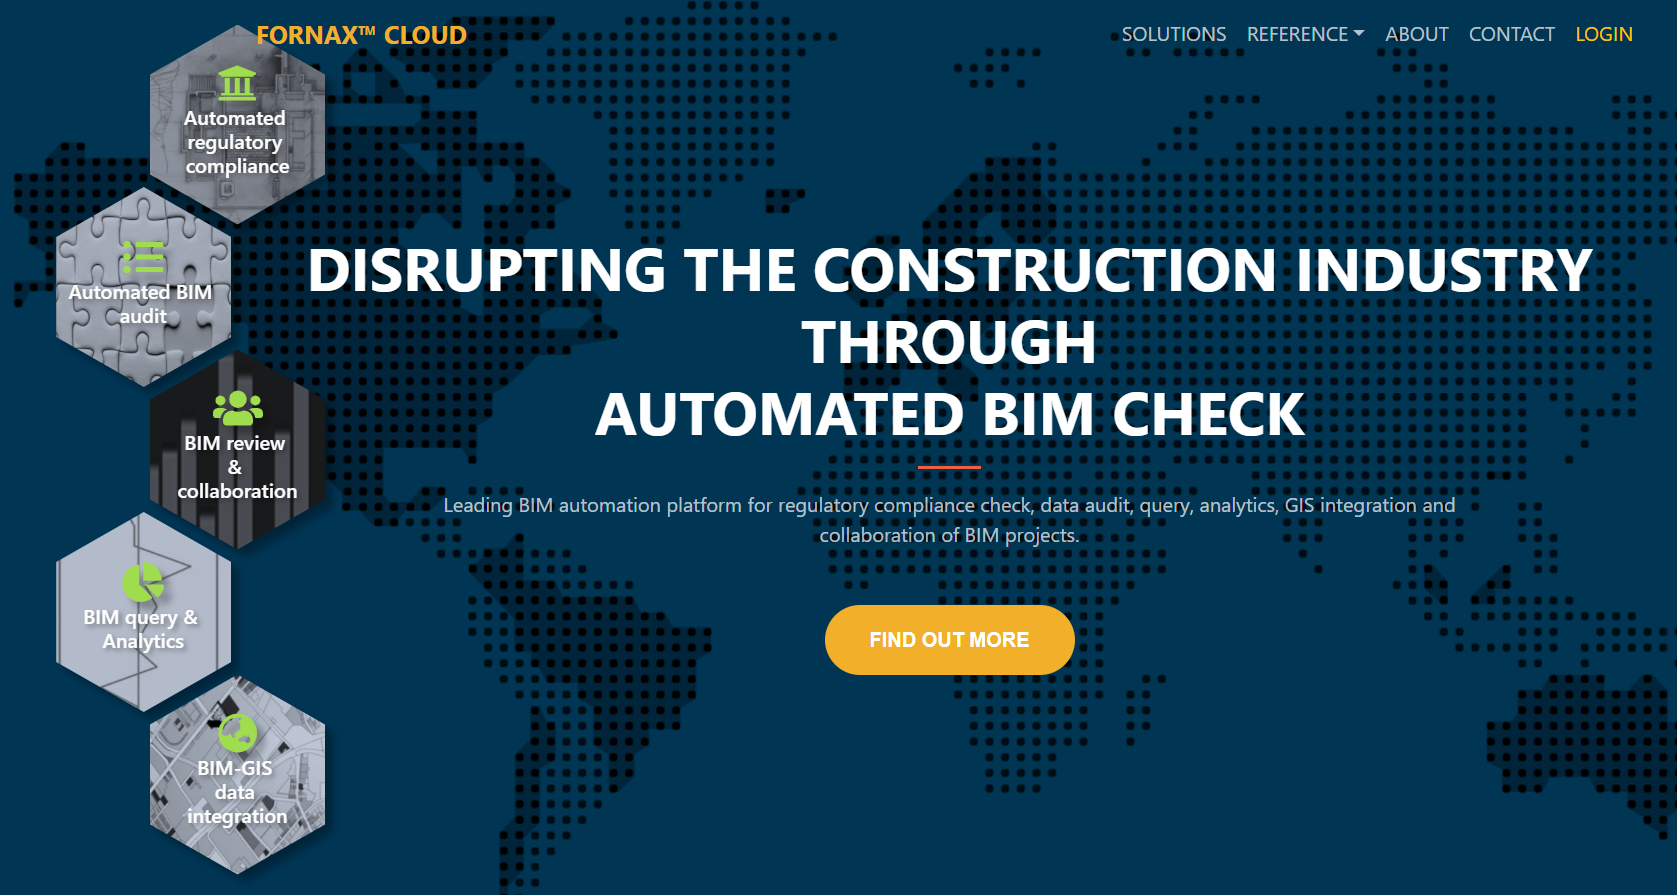 Nova MSC launches FORNAX™ Cloud to perform BIM automated check in the Cloud